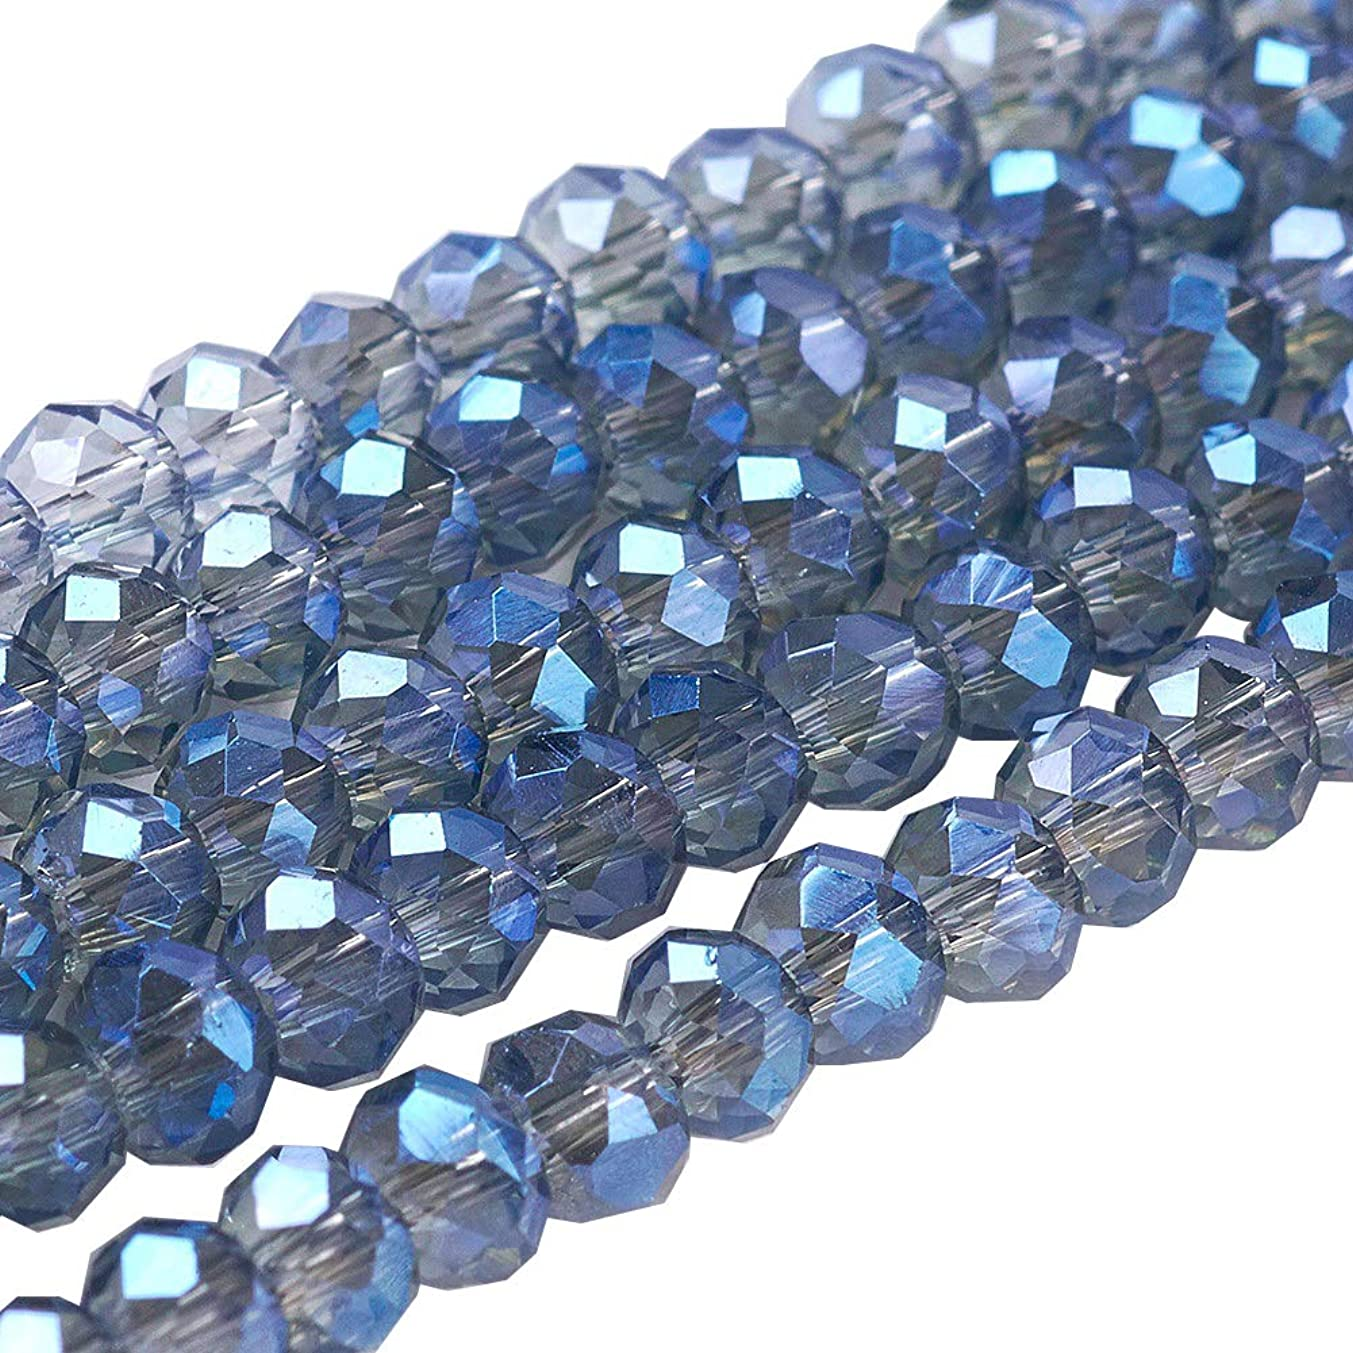 NBEADS 10 Strands of 2mm Wholesale Blue Briolette Crystal Glass Beads Faceted Spacer Beads Briollete Rondelle Shaped